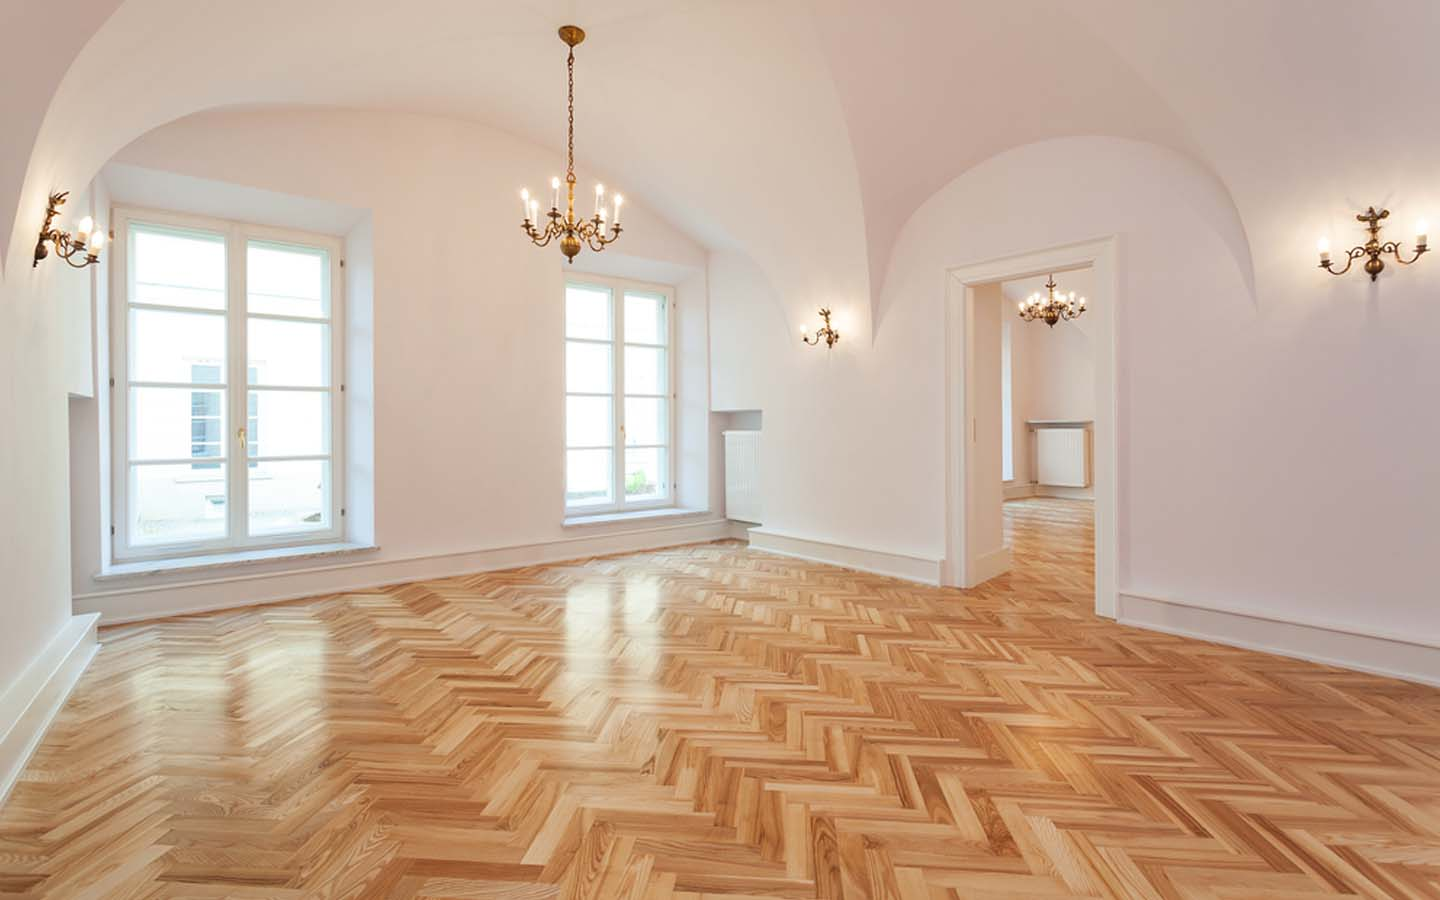 Parquet flooring maintenance tips: Cleaning, Preventions & more - MyBayut